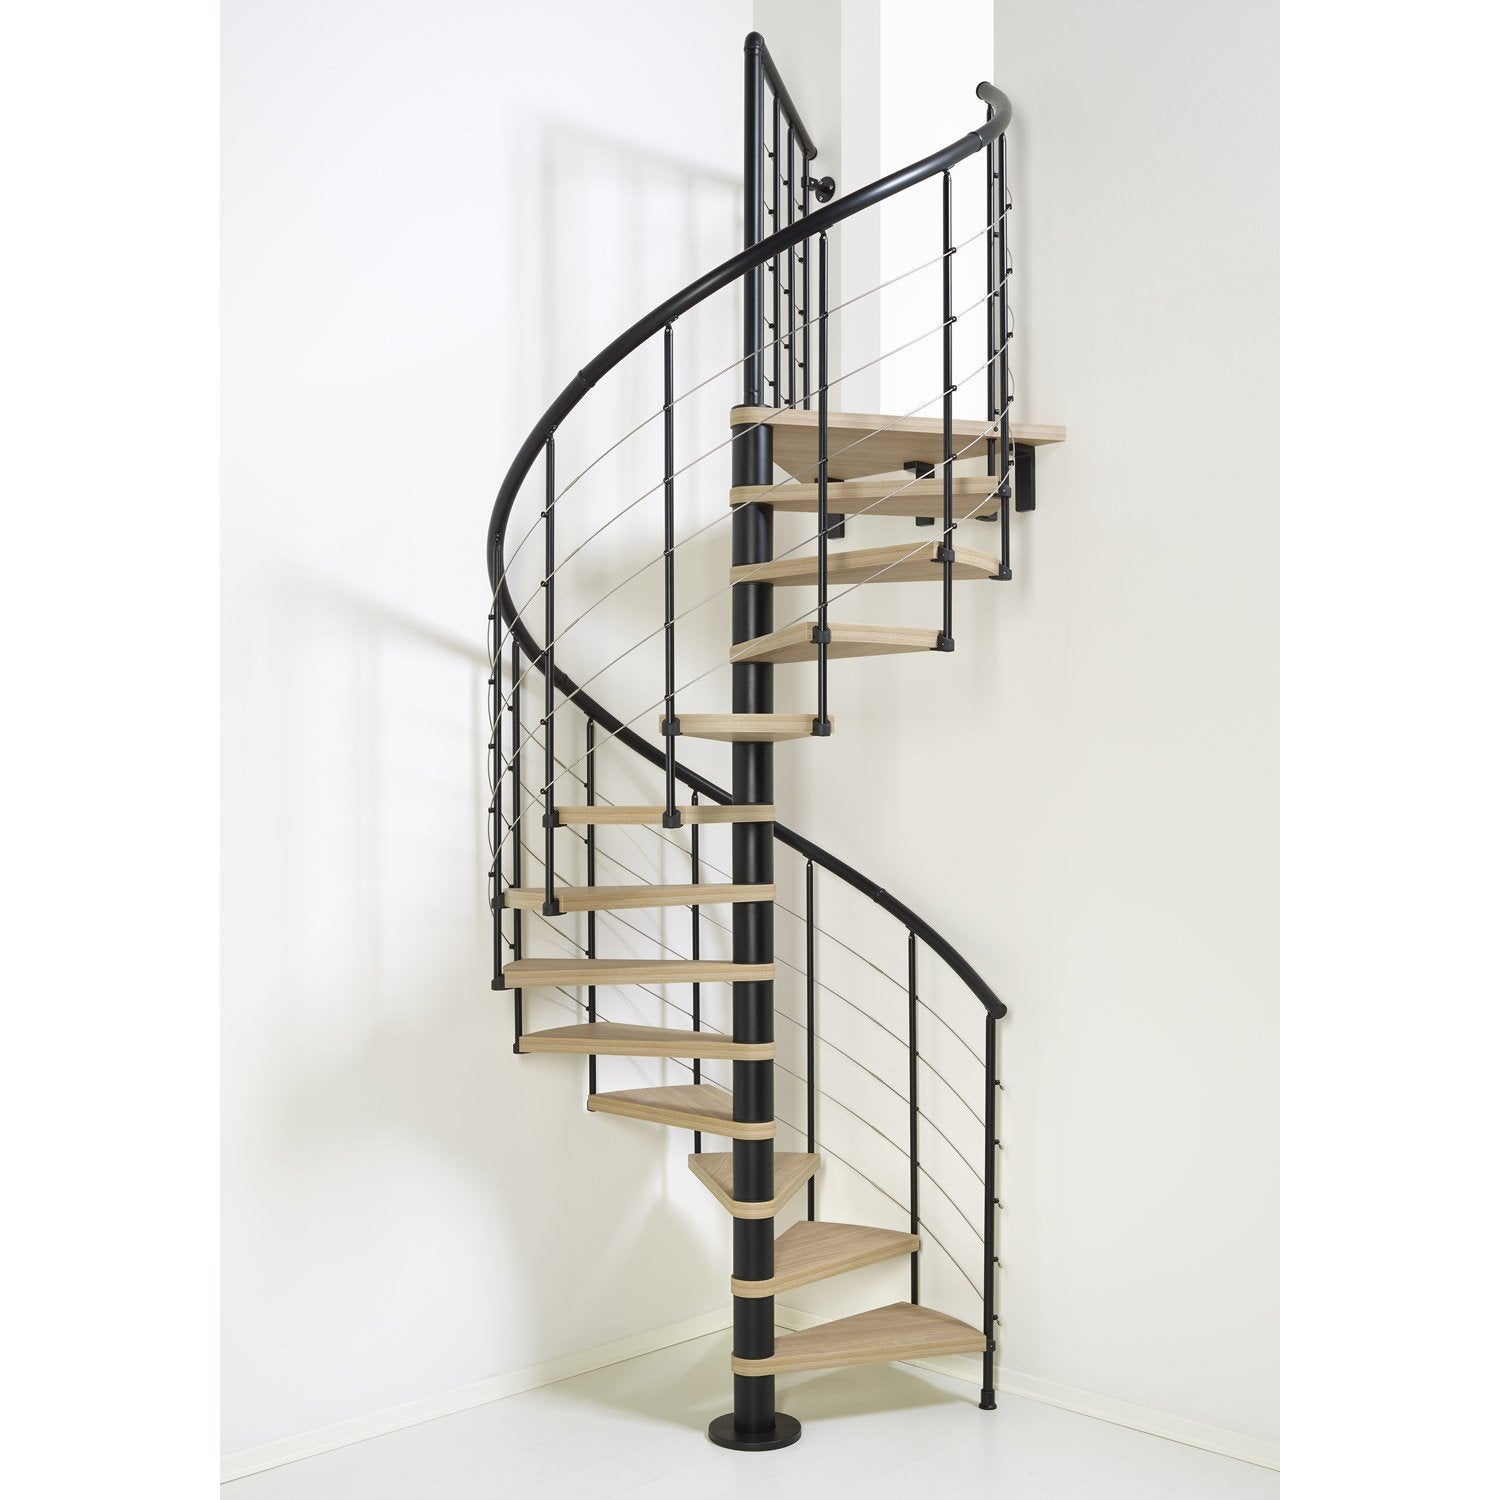 escalier colima on rond ringtube structure acier marche bois leroy merlin. Black Bedroom Furniture Sets. Home Design Ideas